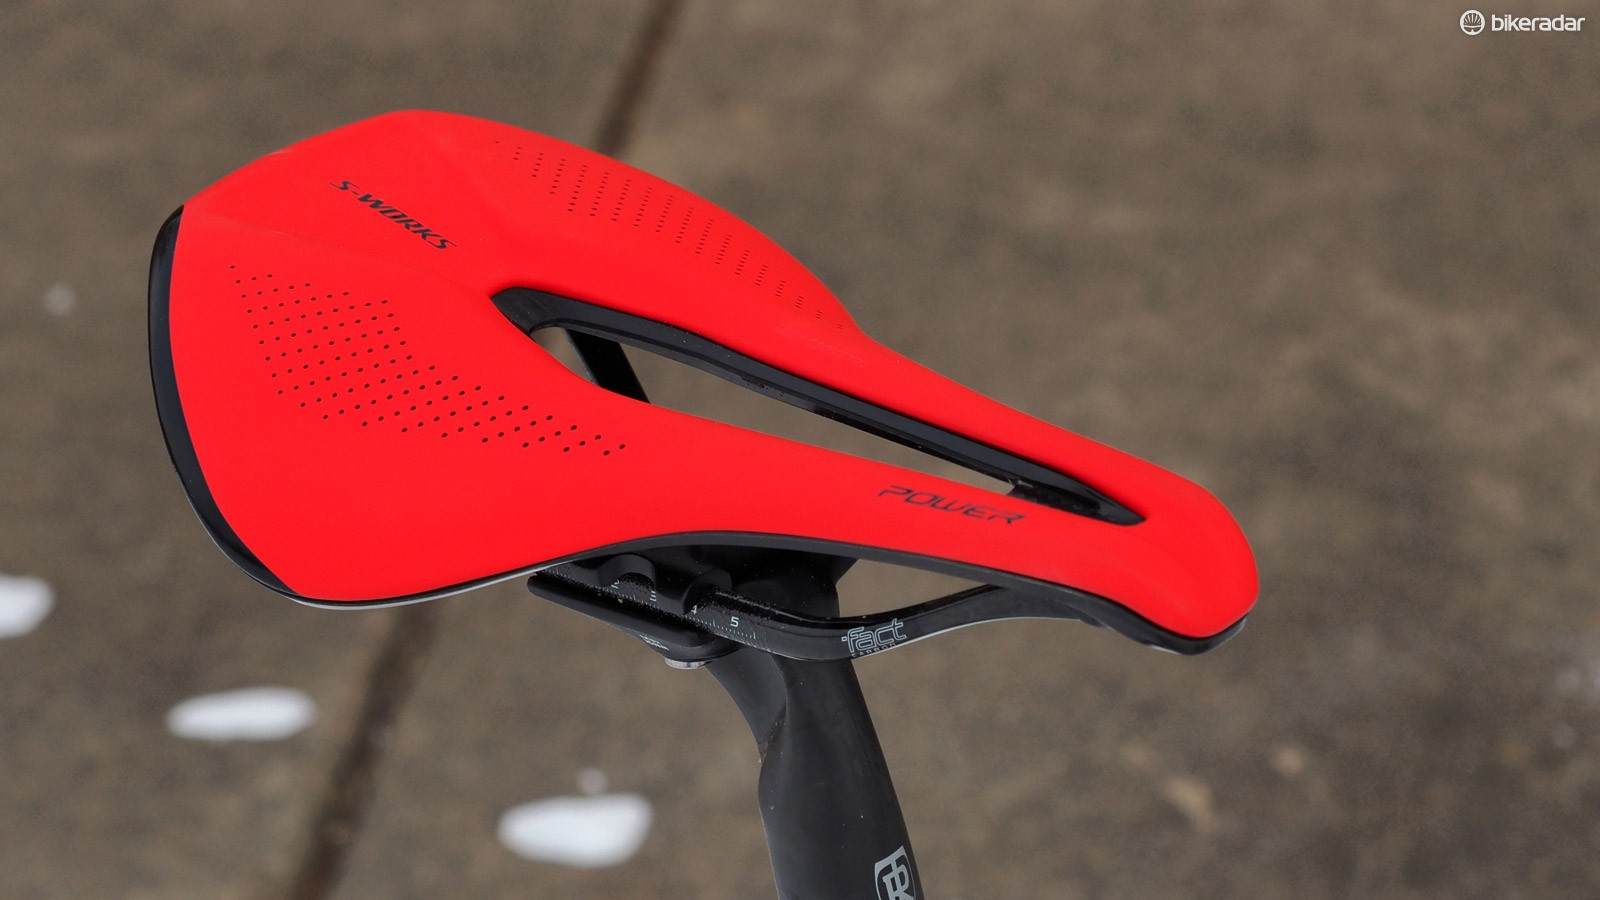 The Specialized S-Works Power saddle looks unusual but it's actually very comfortable, particularly when riding in very aggressively low positions